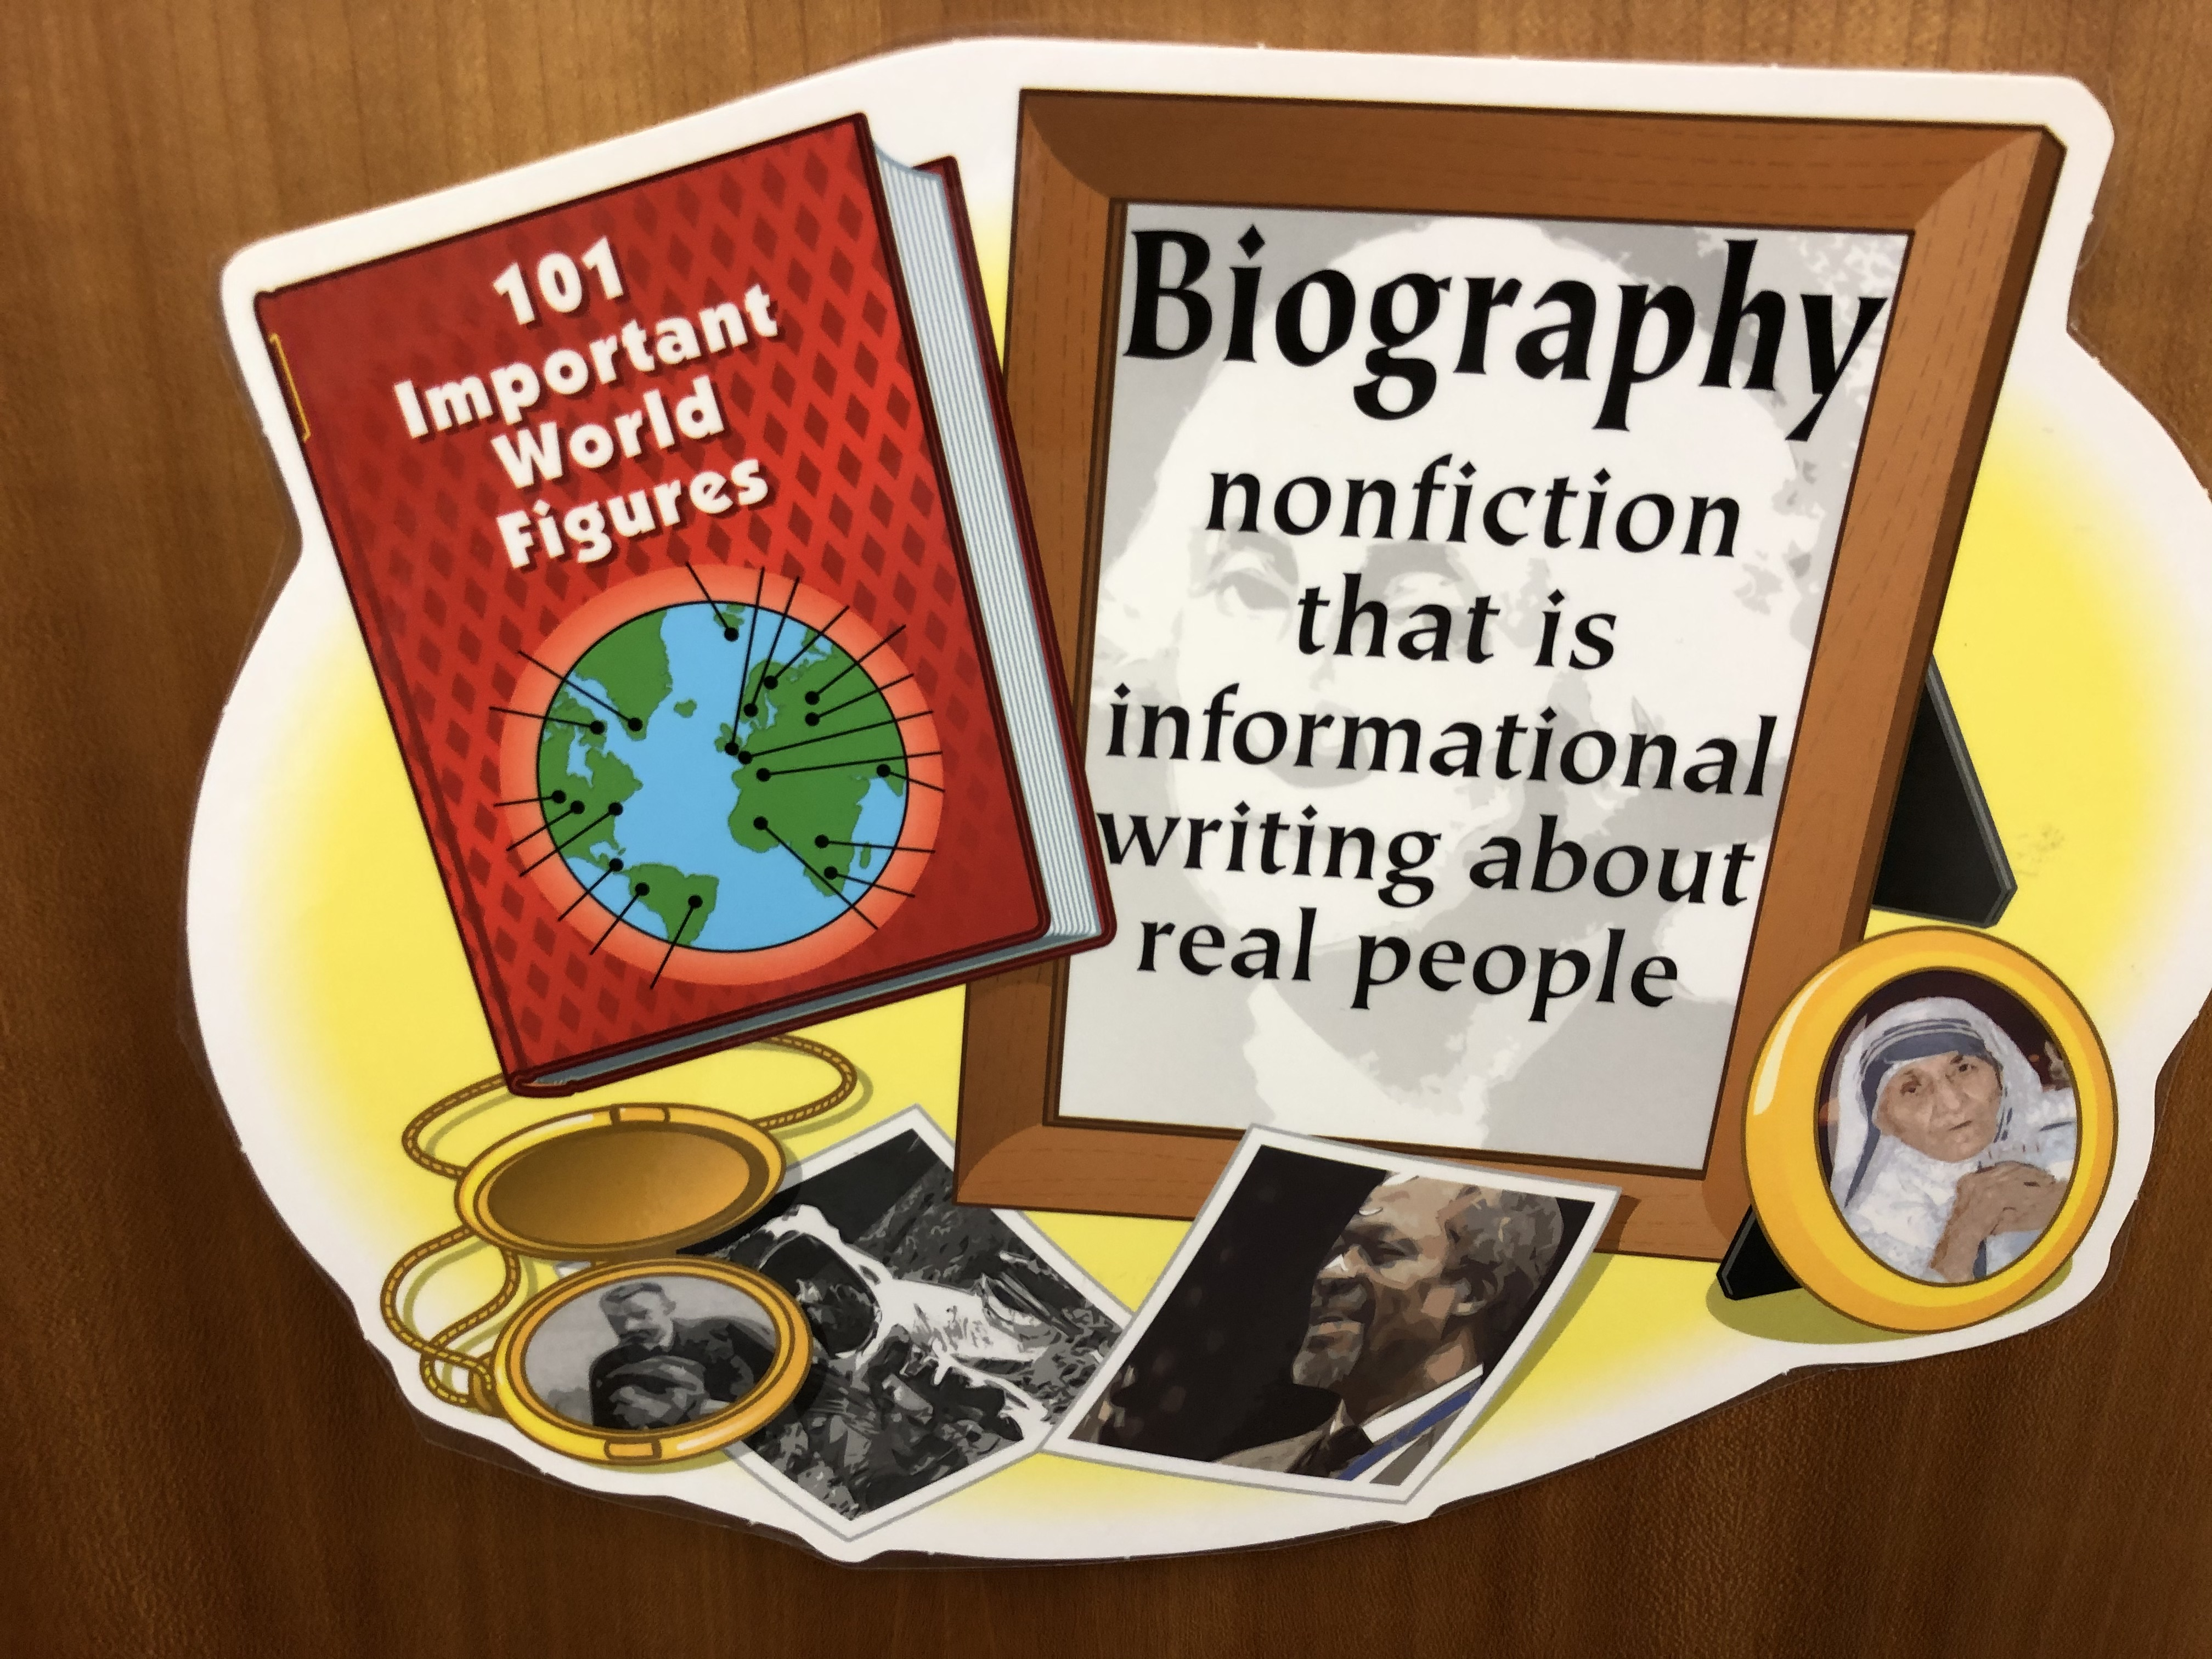 Definition of Biography sign